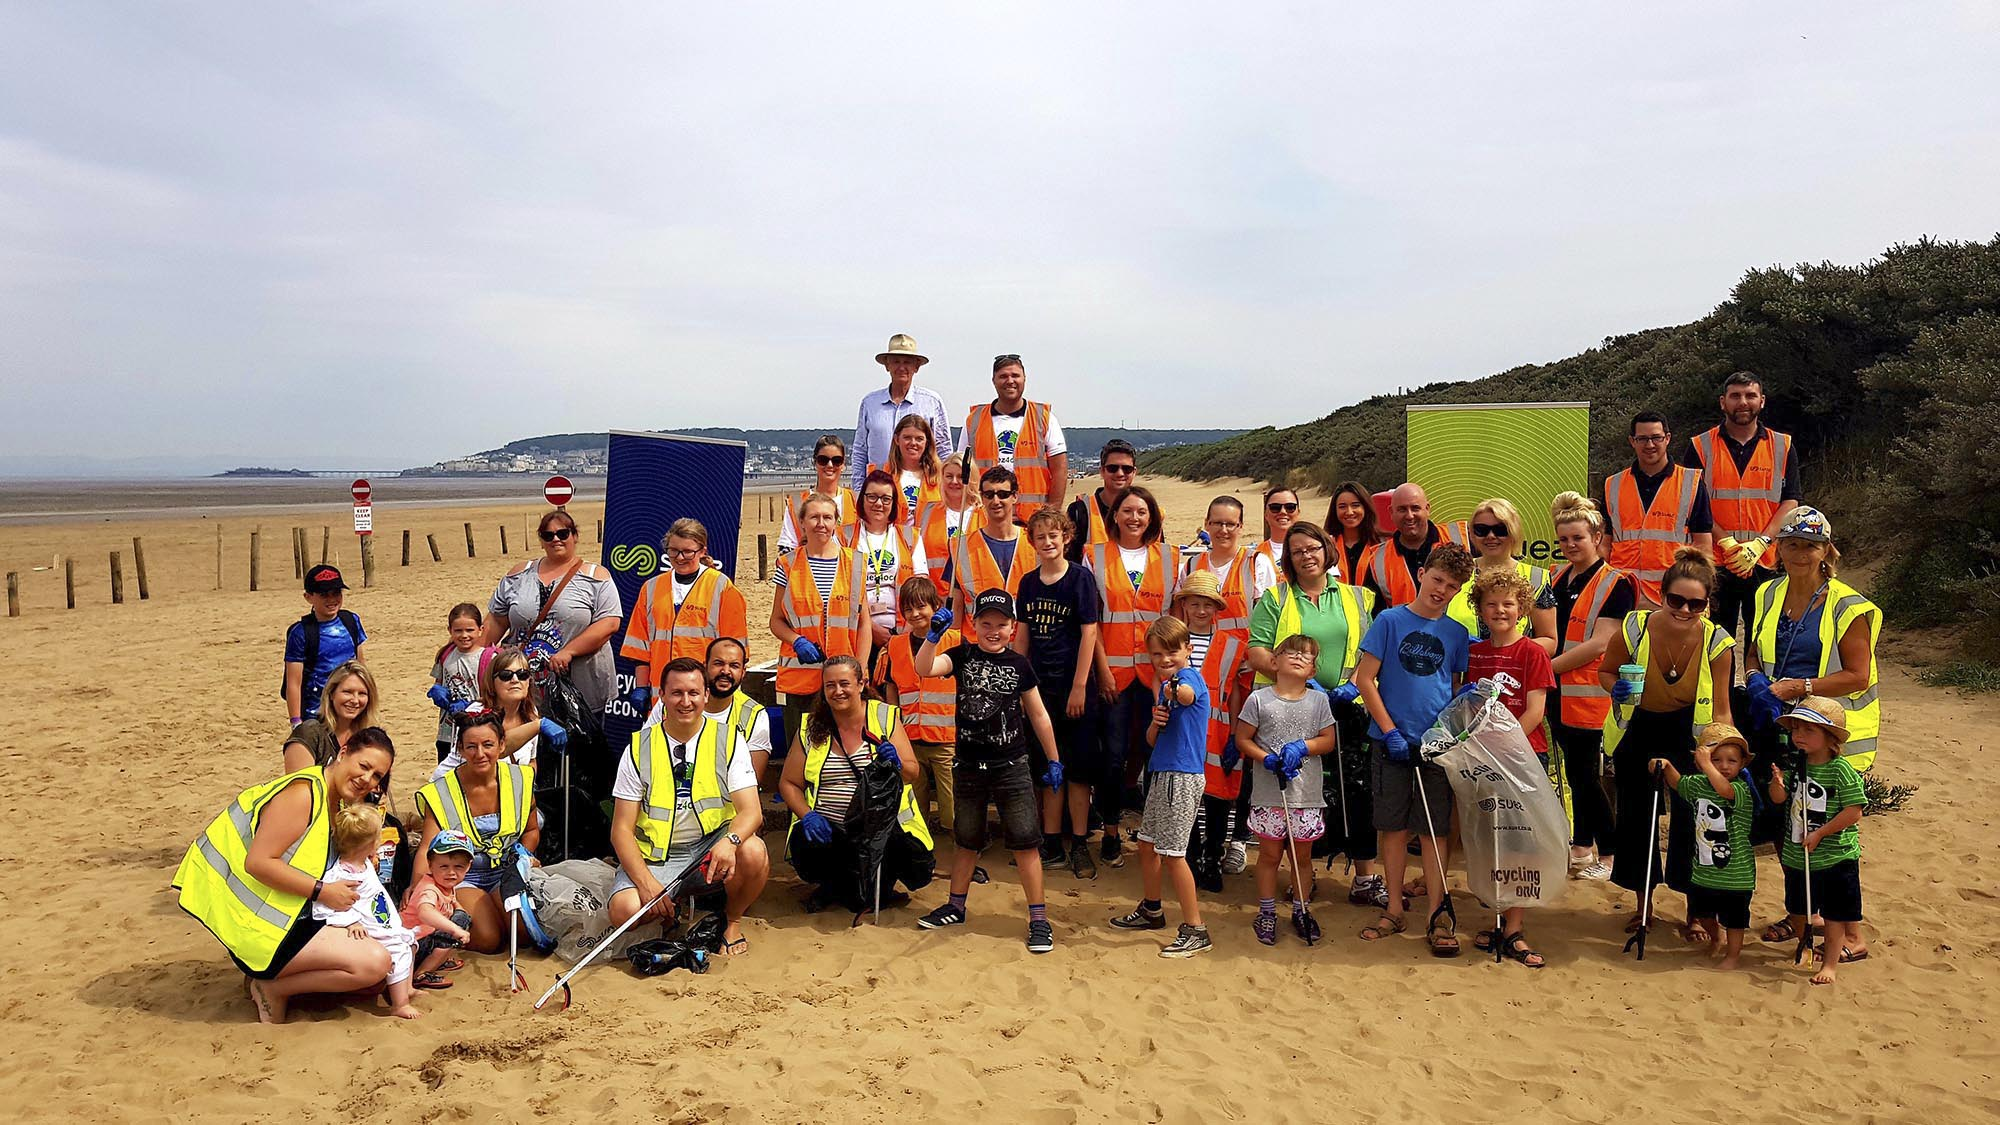 #SUEZ4Ocean beach clean up July 2018